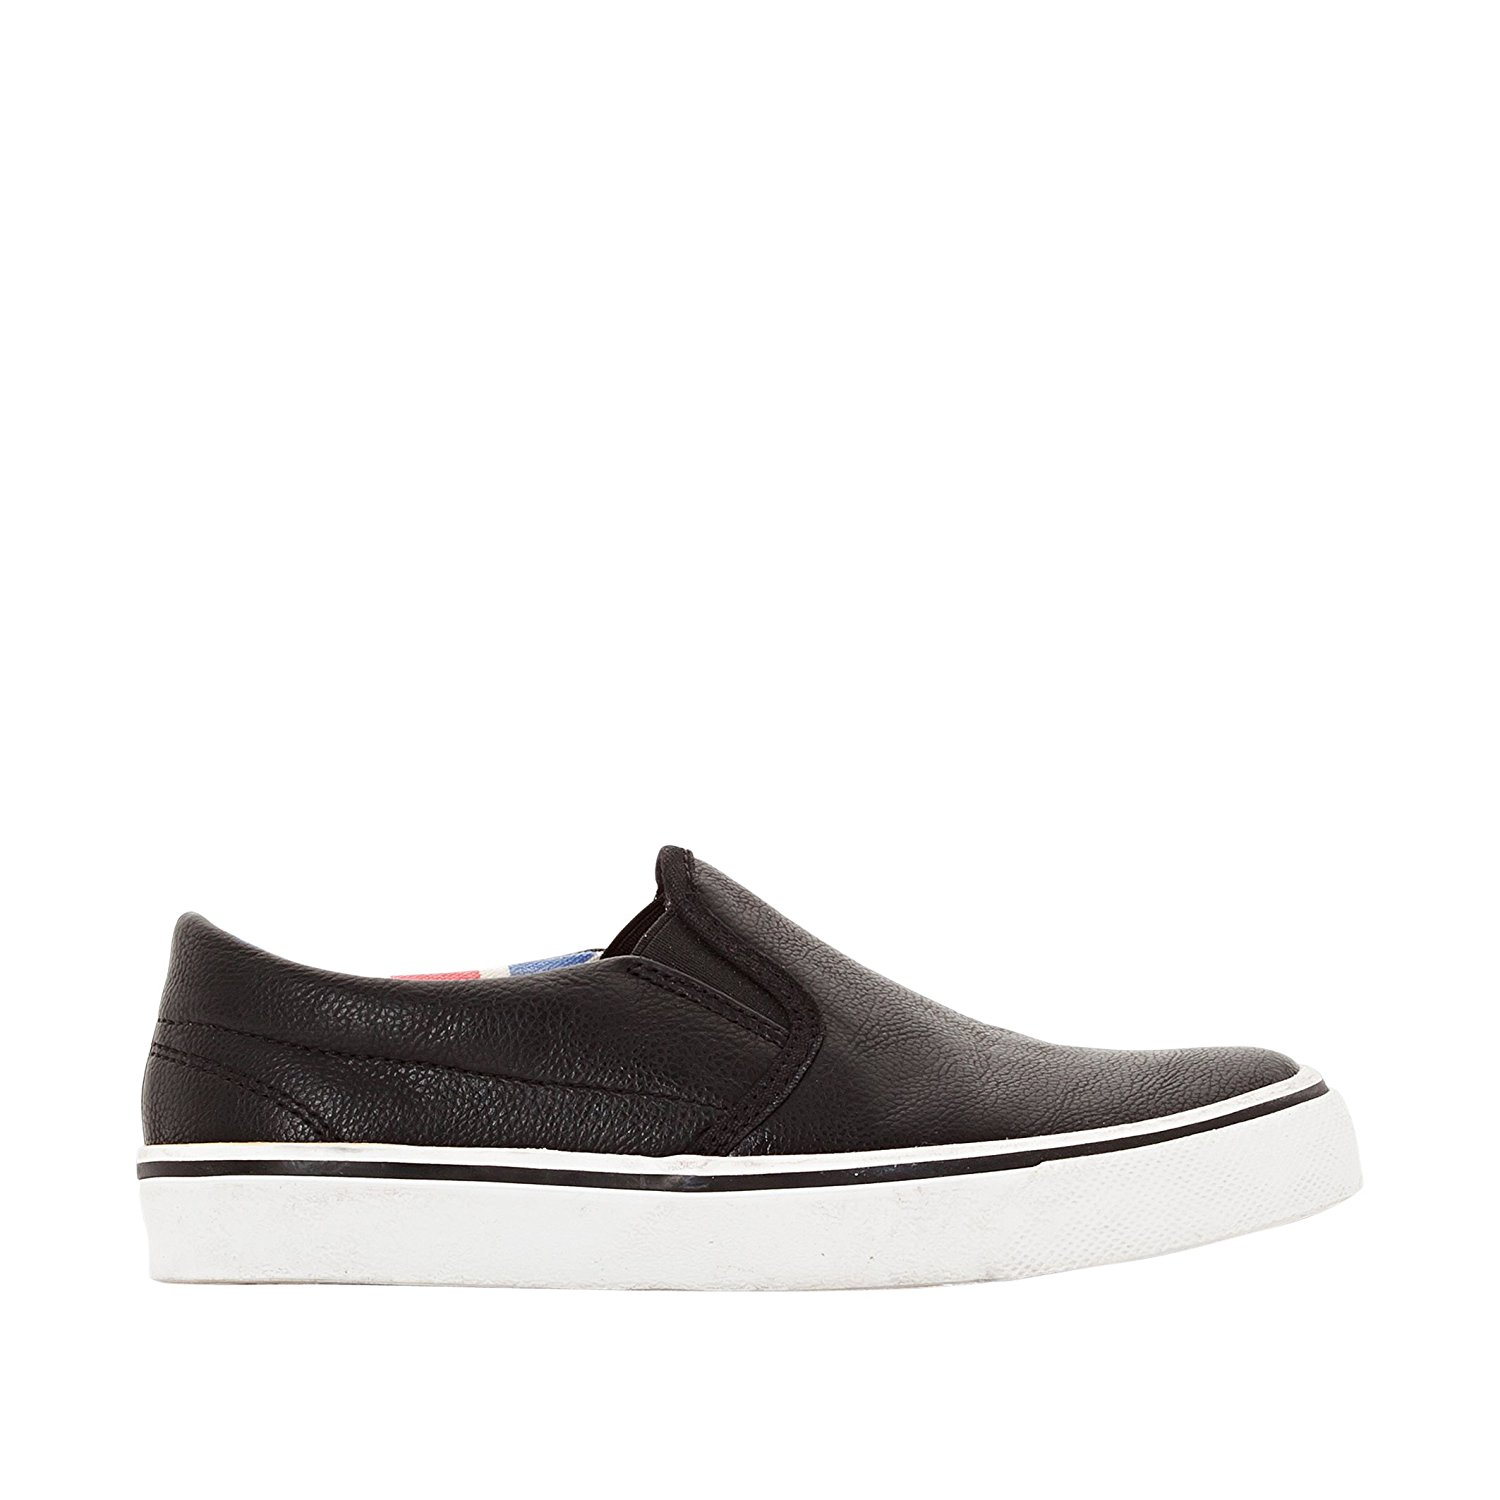 5f32a2c72858 Get Quotations · R Kids Little Boys Low Top Faux Grained Leather Plimsolls